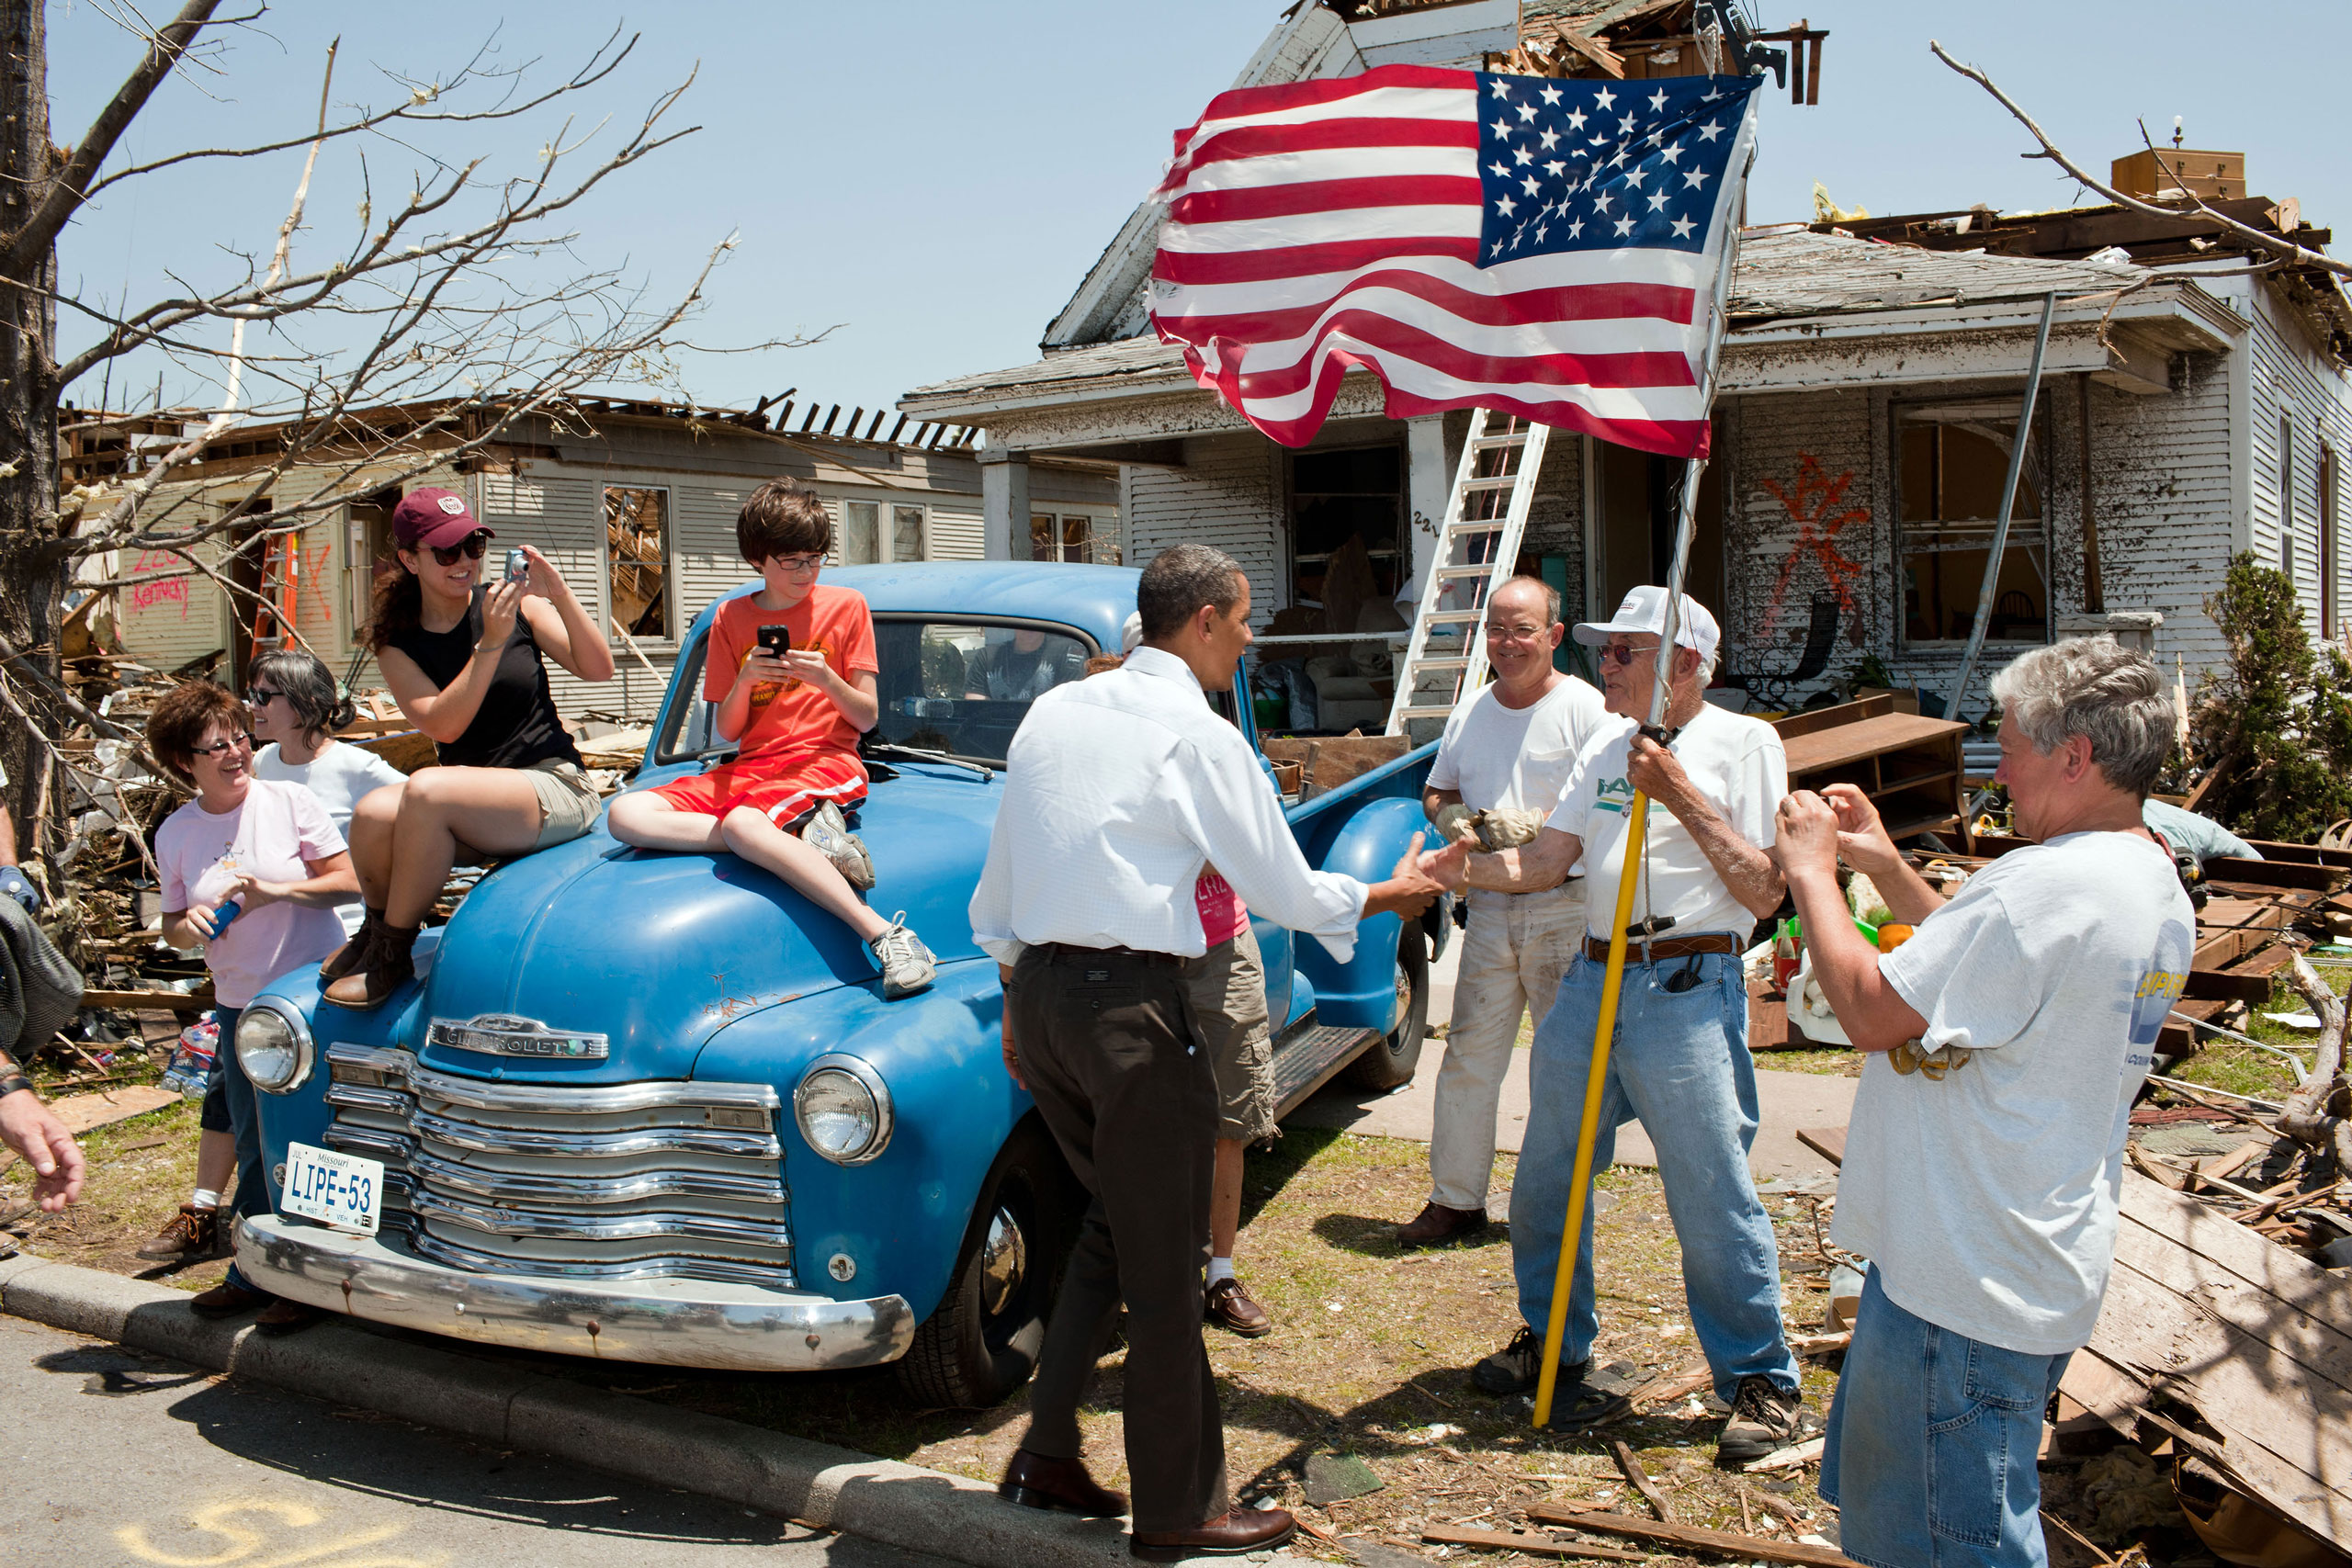 The President visits Joplin, Mo., on May 29, 2011, following a devastating tornado. Here he greets Hugh Hills, 85, in front of his home. Hills told the President he hid in a closet during the tornado, which destroyed the second floor and half the first floor of his house.